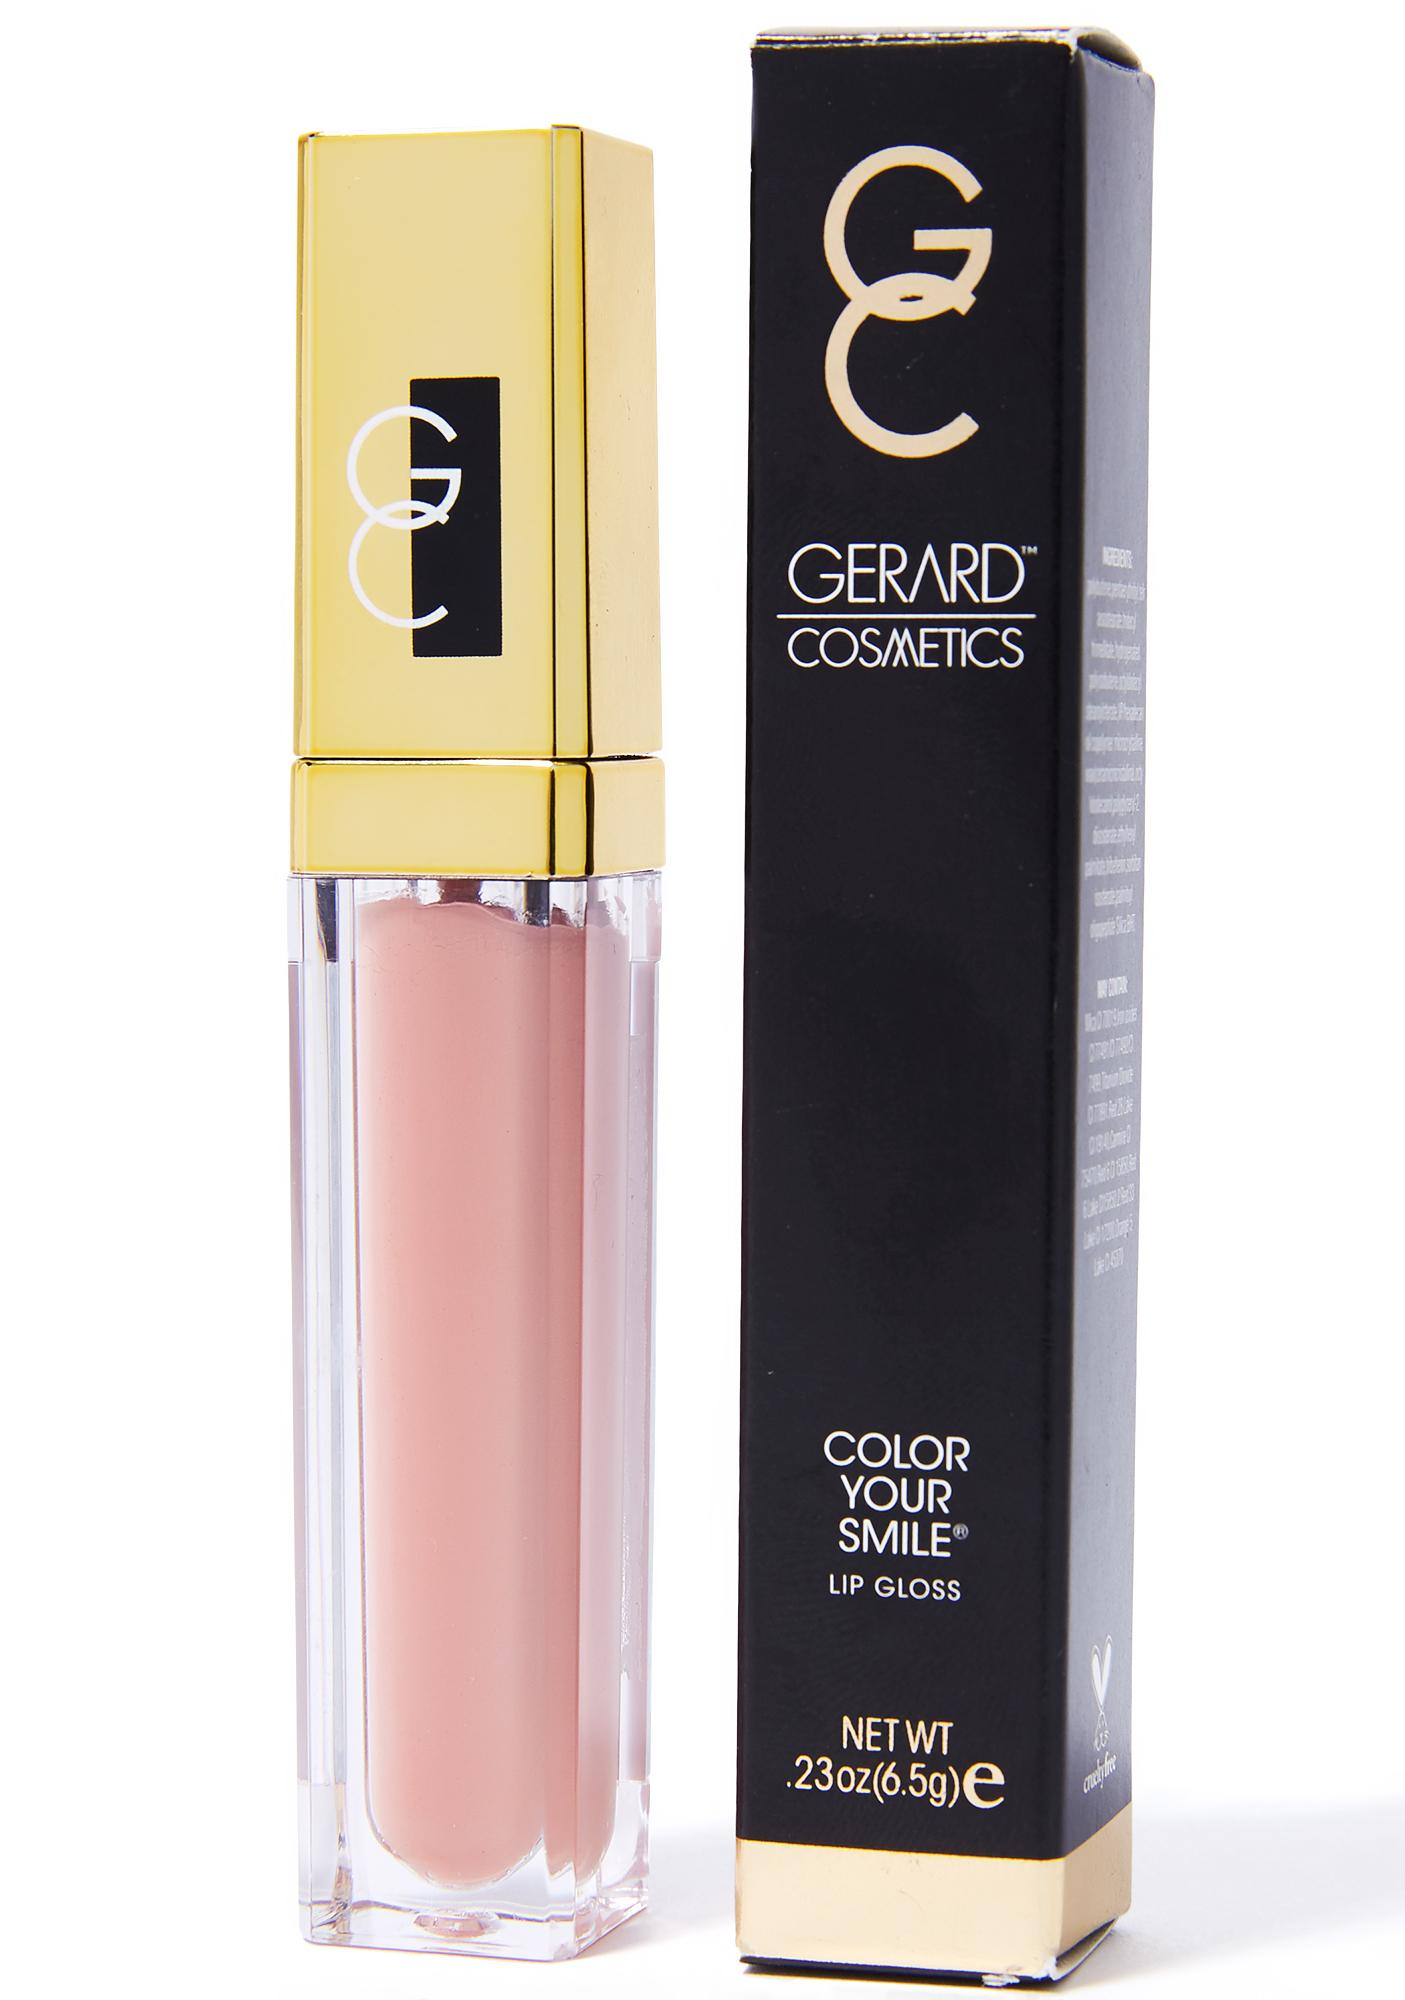 Gerard Cosmetics Buttercream Color Your Smile Lighted Lip Gloss